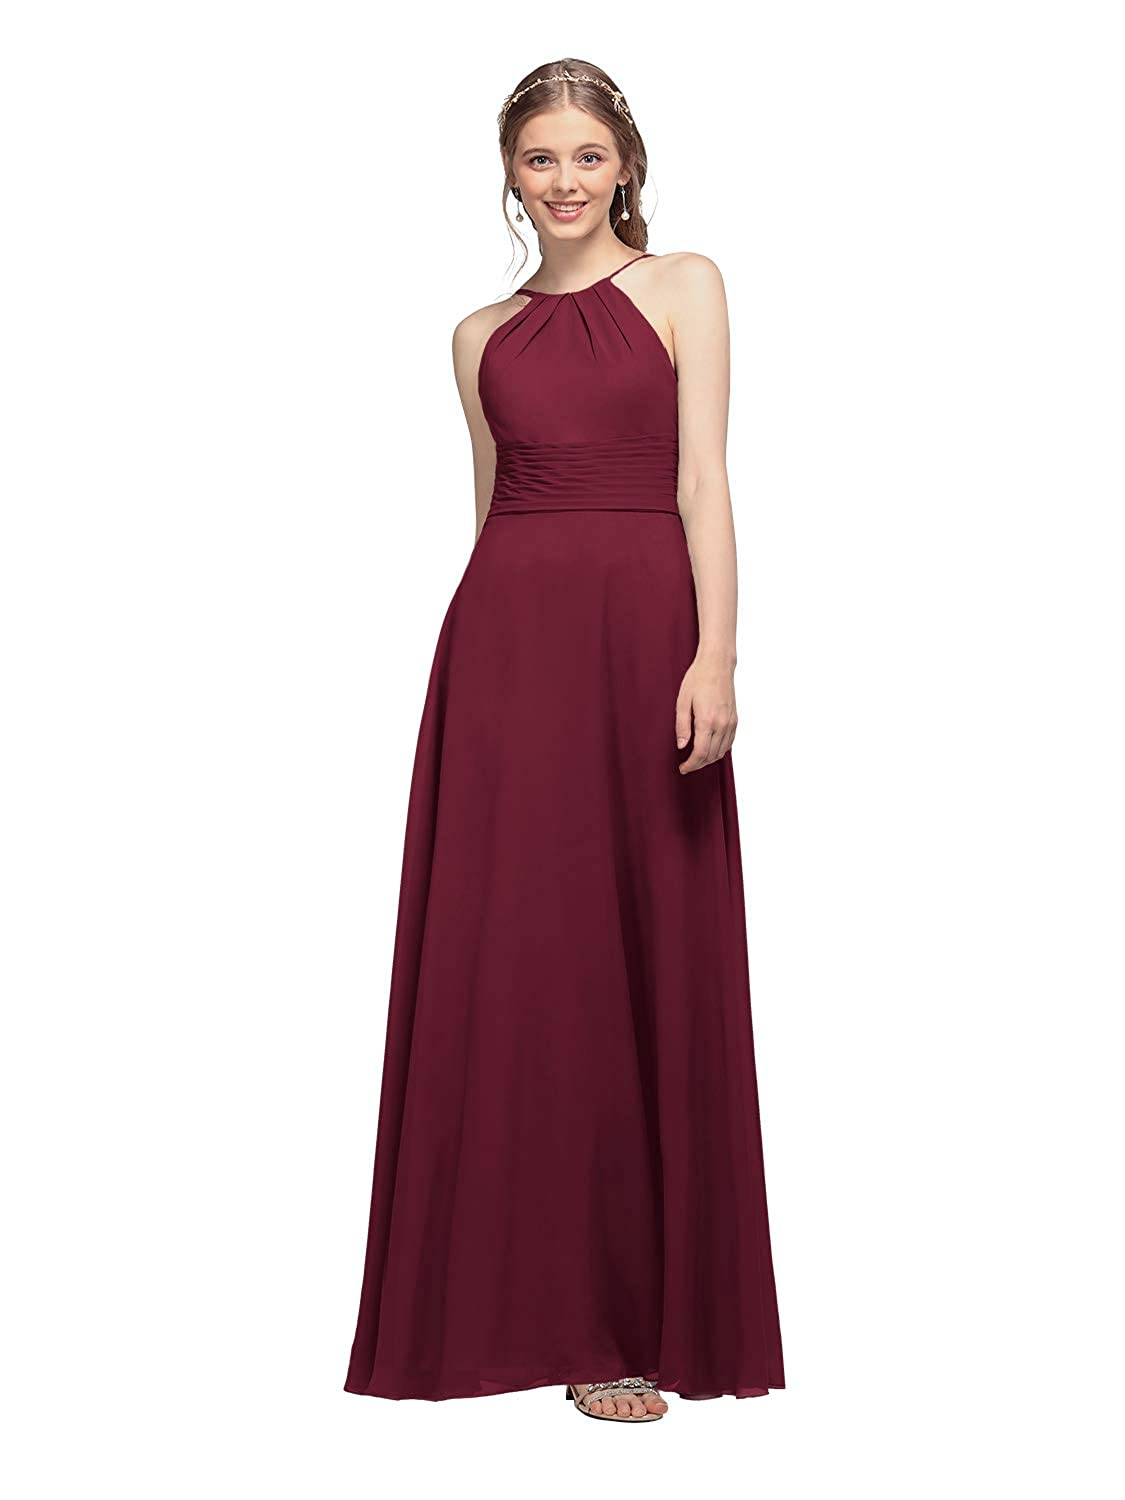 AW BRIDAL Chiffon Halter Long Bridesmaid Dresses Plus Size Formal Dreses for Women Maxi Evening Gown